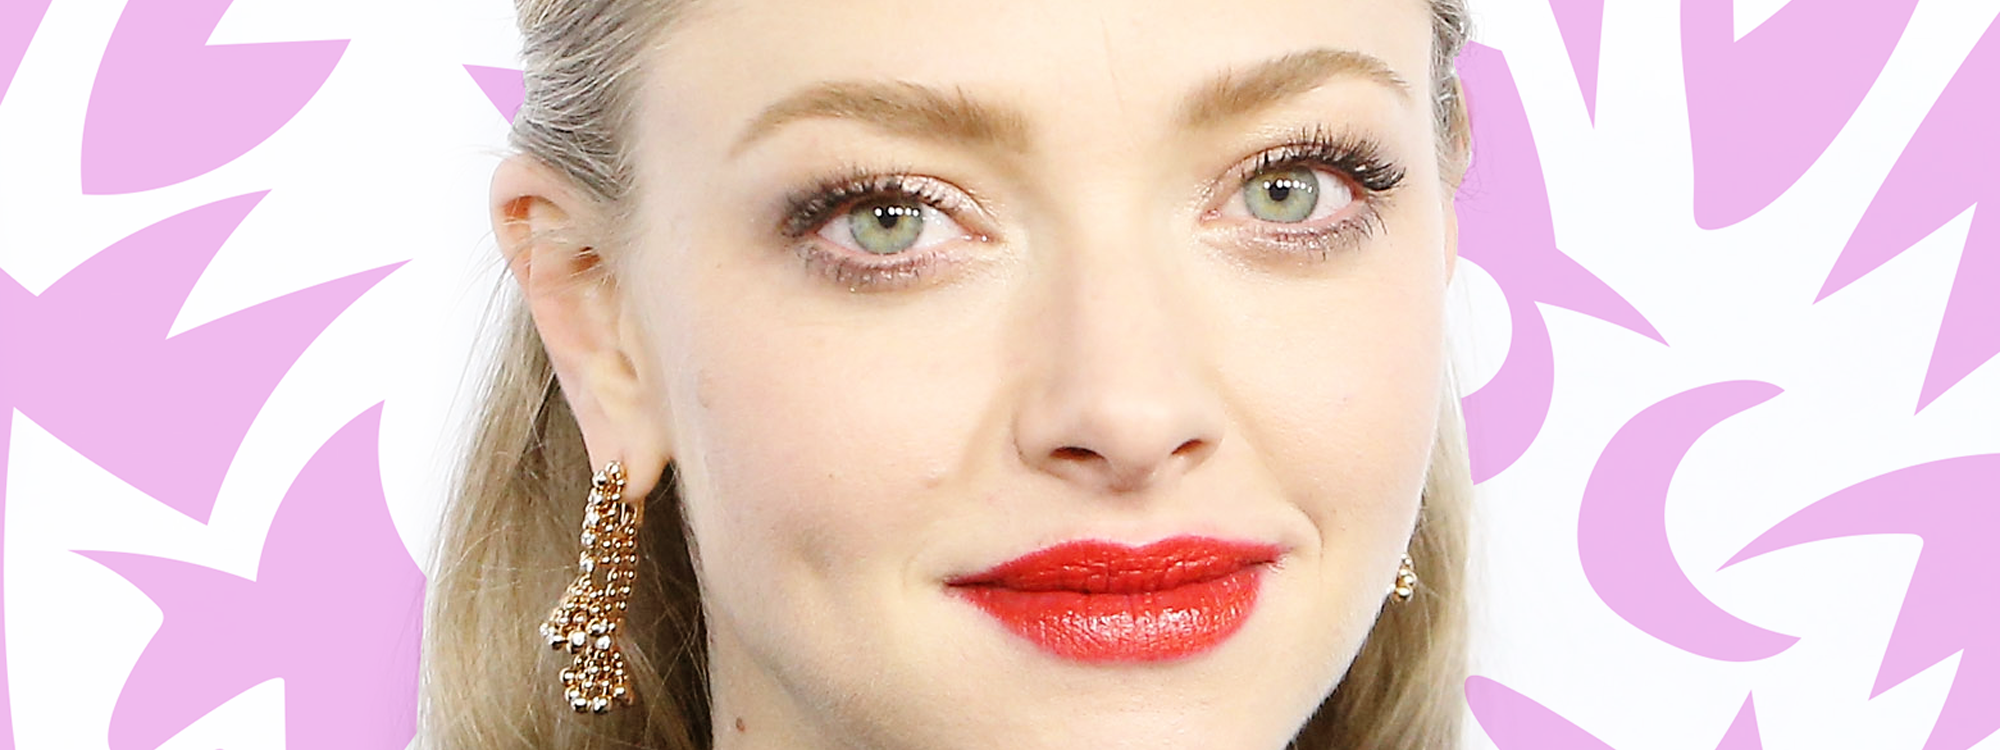 amanda seyfried private photos leaked hack legal action